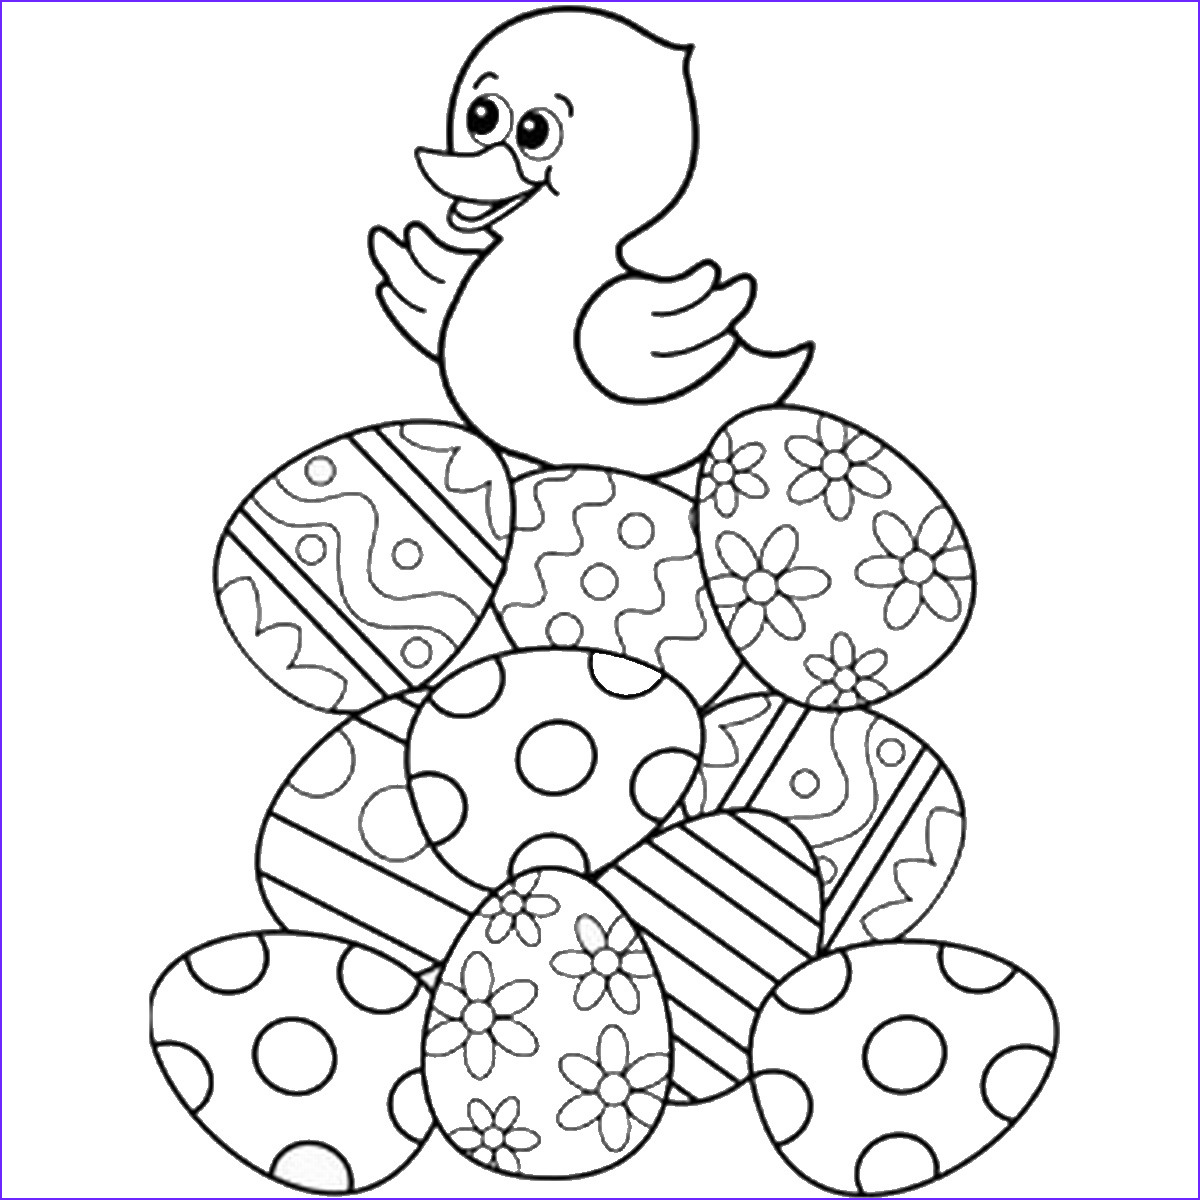 Coloring Pages for Easter Cool Image Easter Coloring Pages